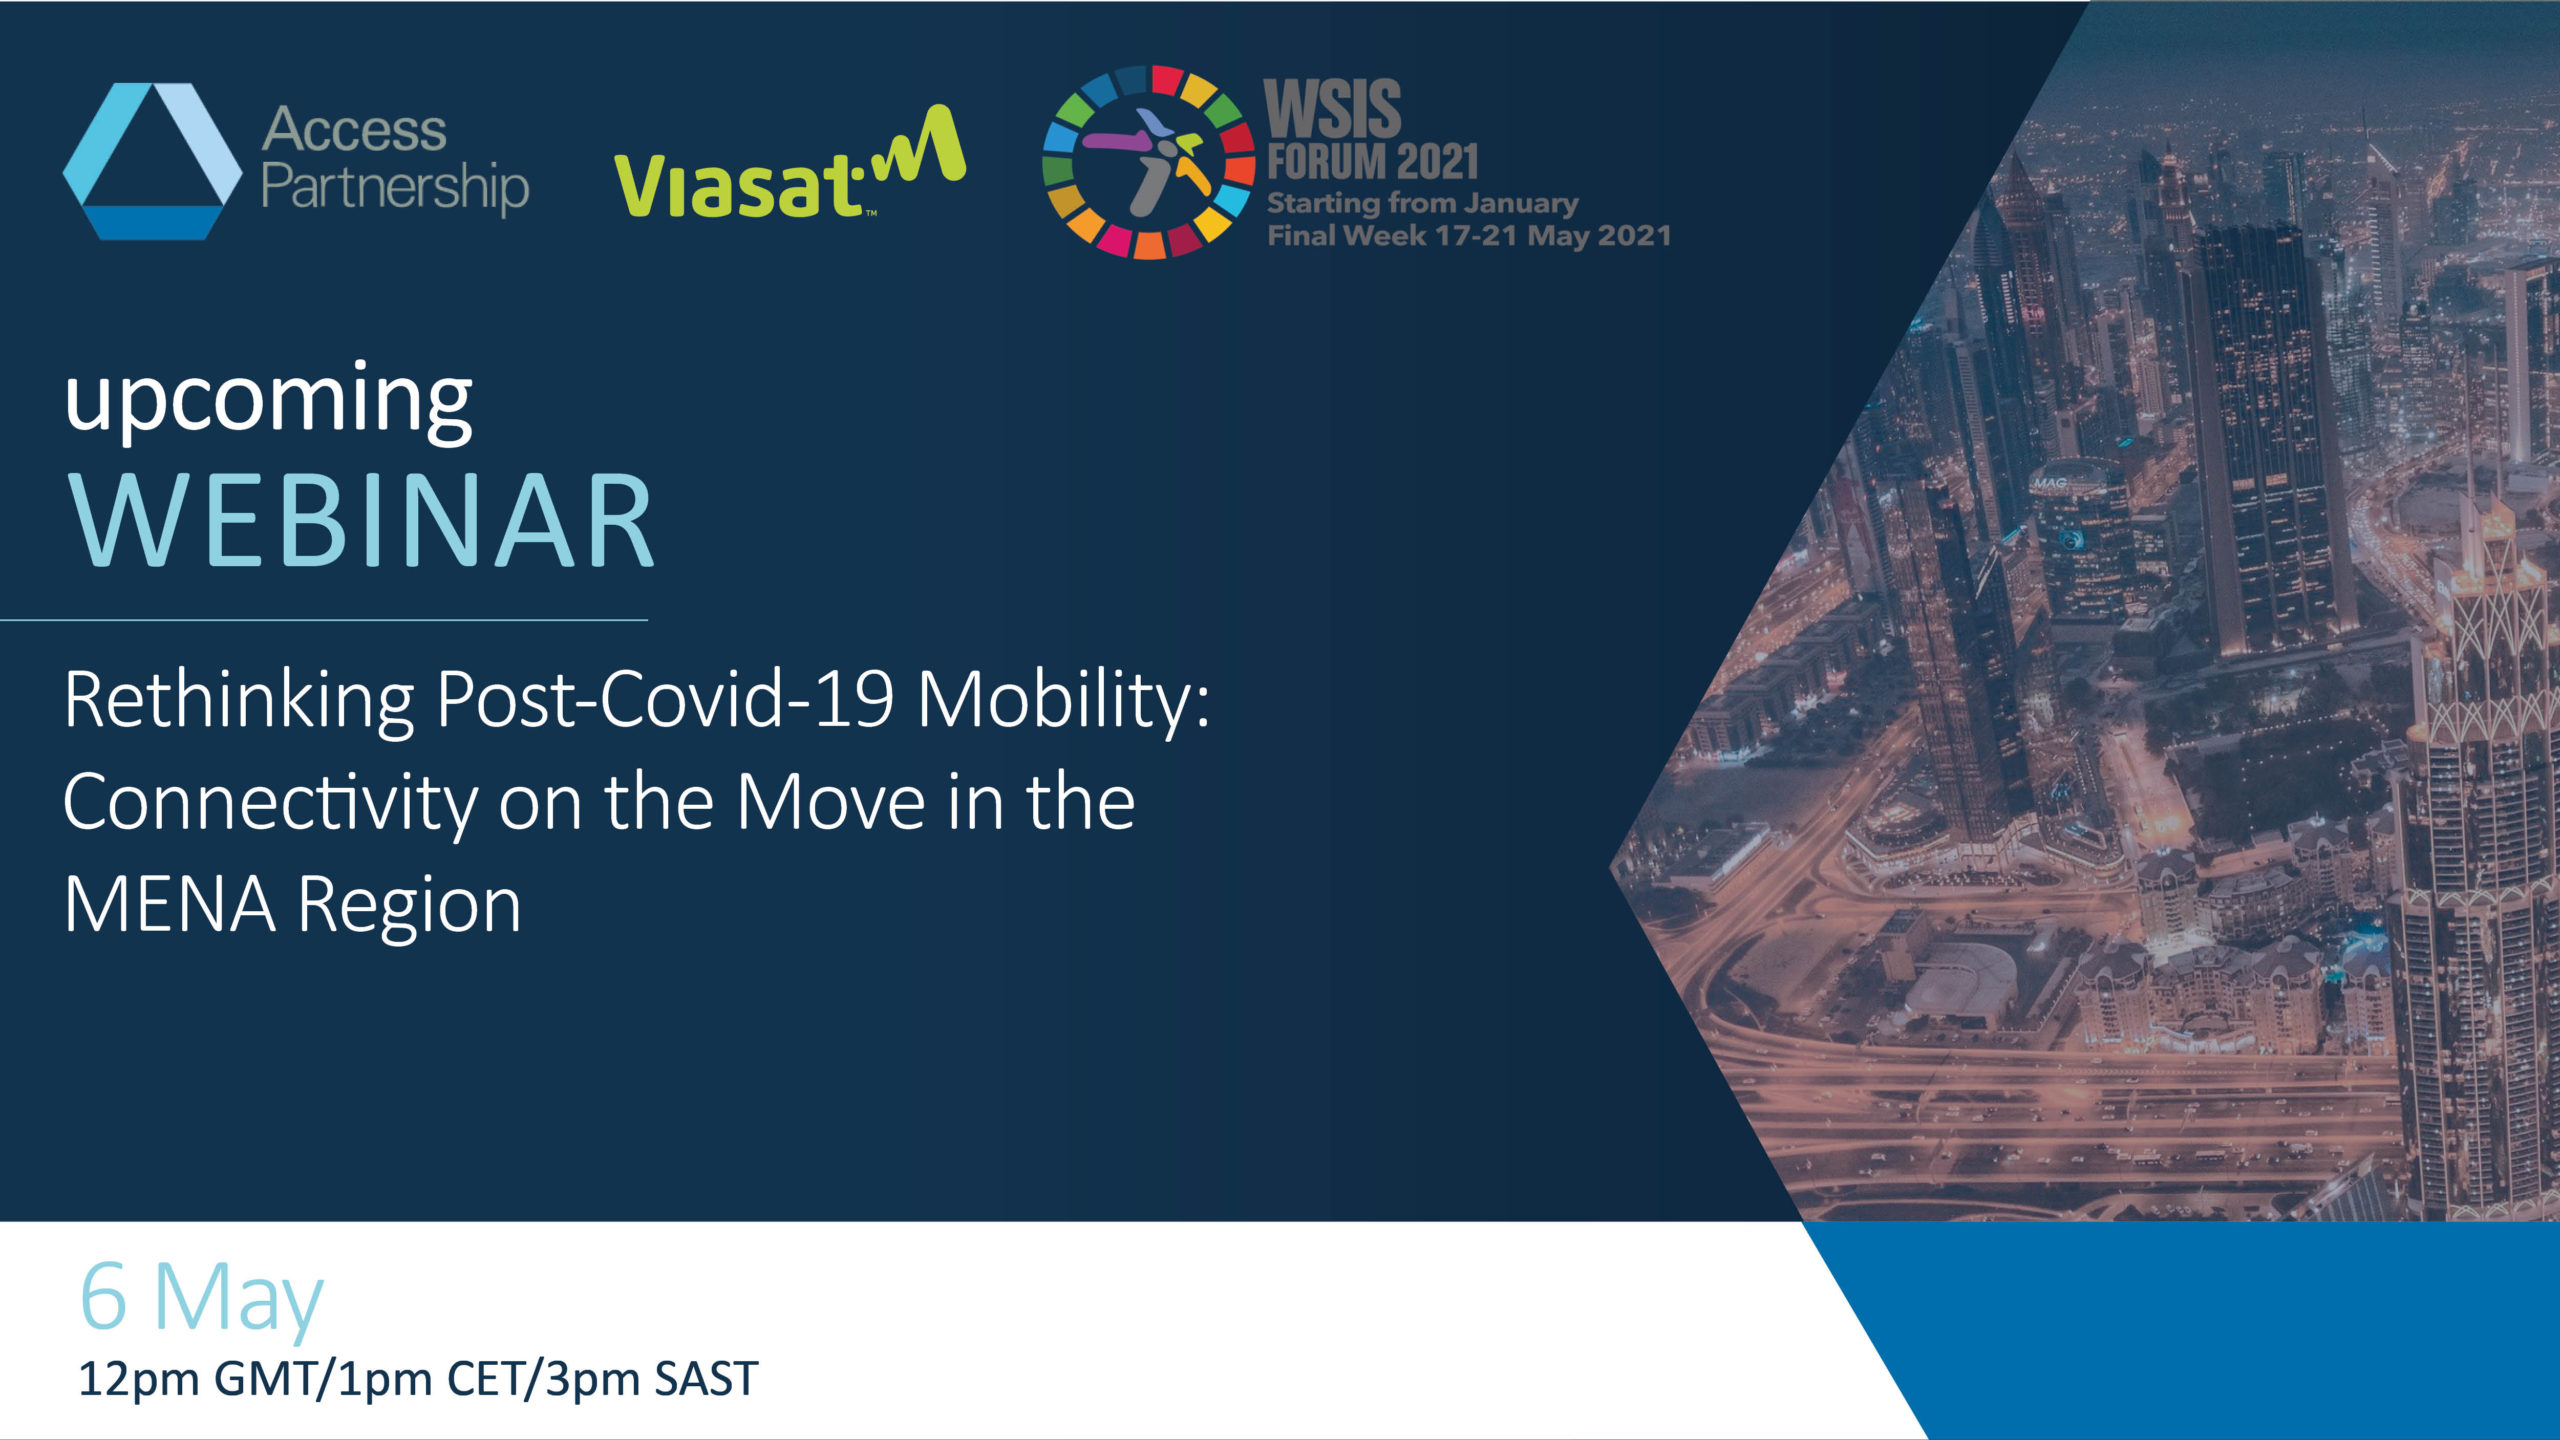 Workshop   Rethinking Post-Covid-19 Mobility: Connectivity on the Move in the MENA Region